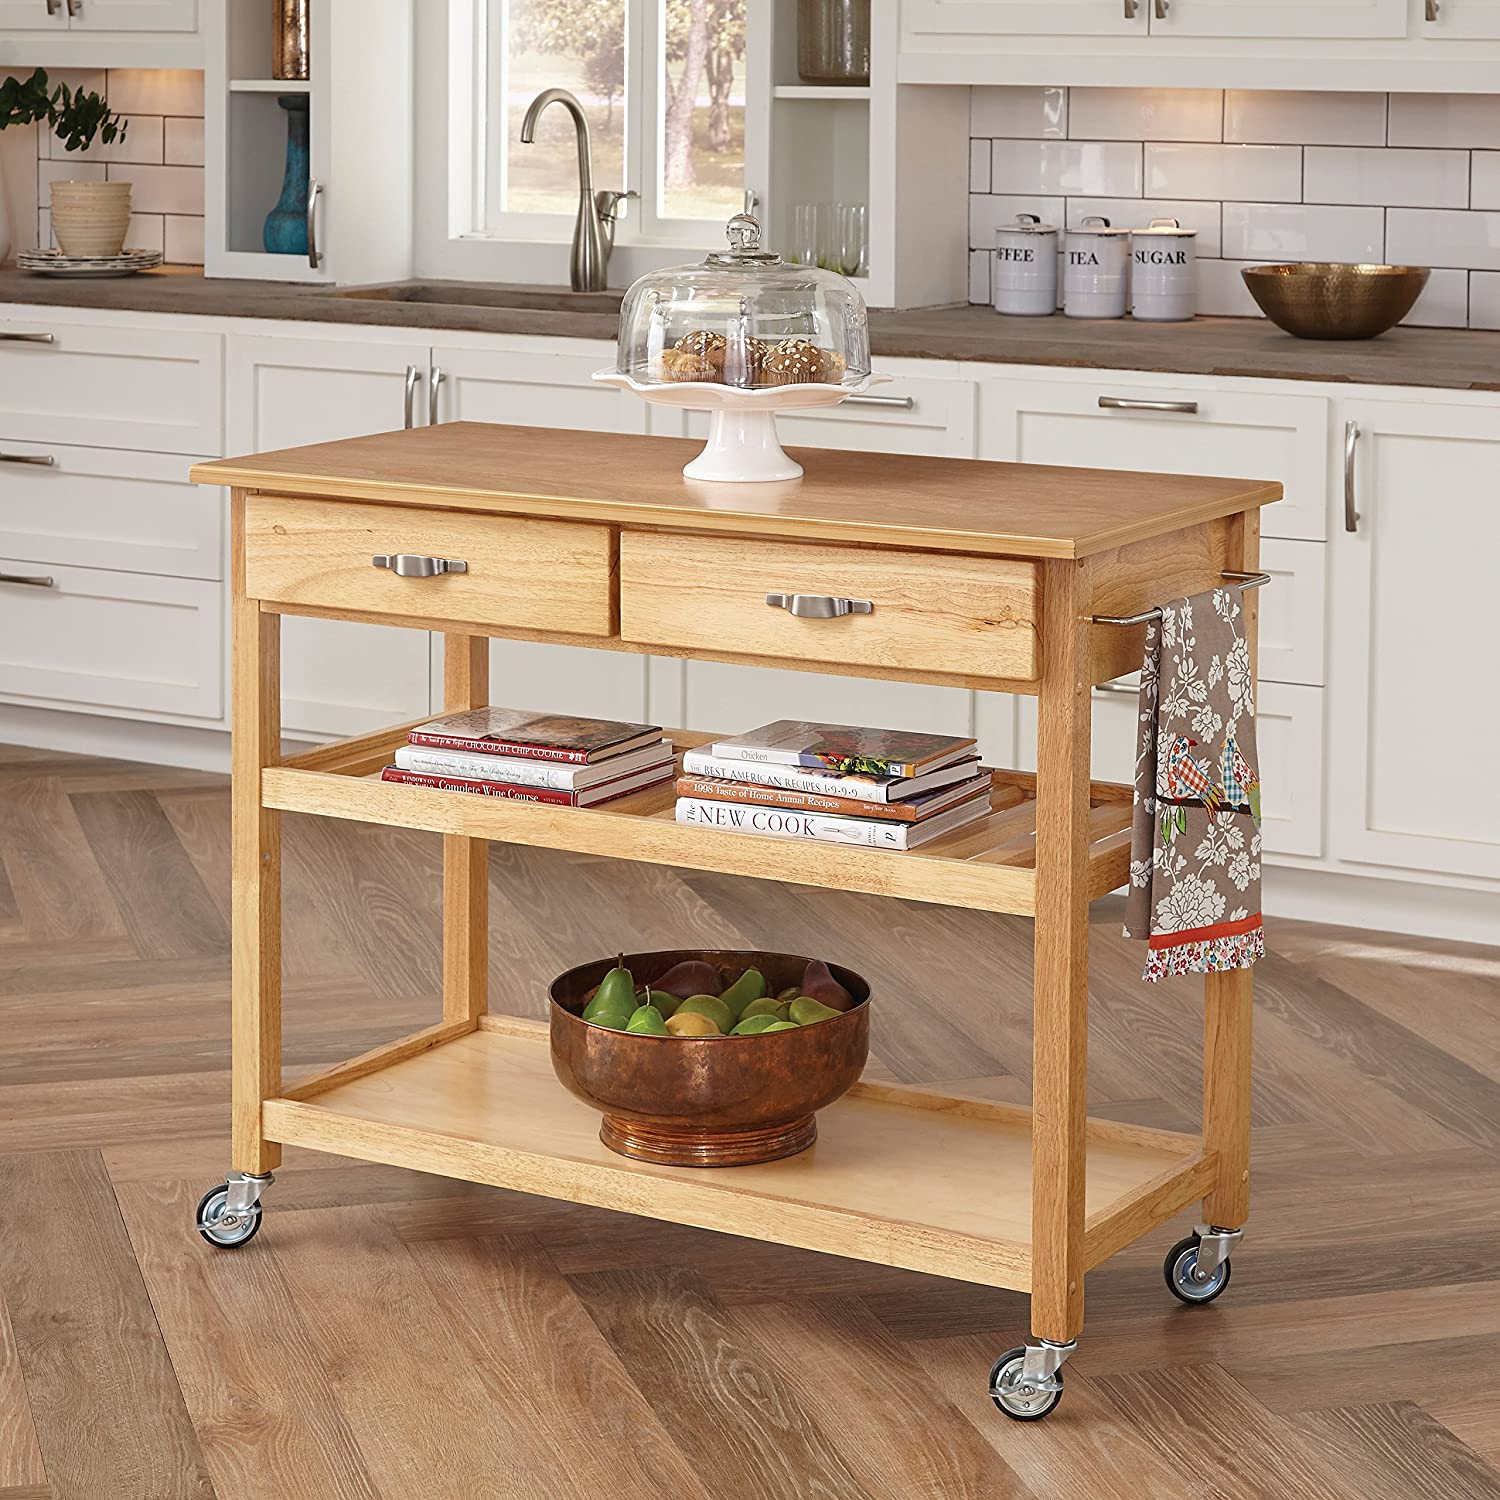 Oak Kitchen Carts And Islands Amazon home styles 5216 95 solid wood top kitchen cart natural amazon home styles 5216 95 solid wood top kitchen cart natural finish kitchen dining workwithnaturefo